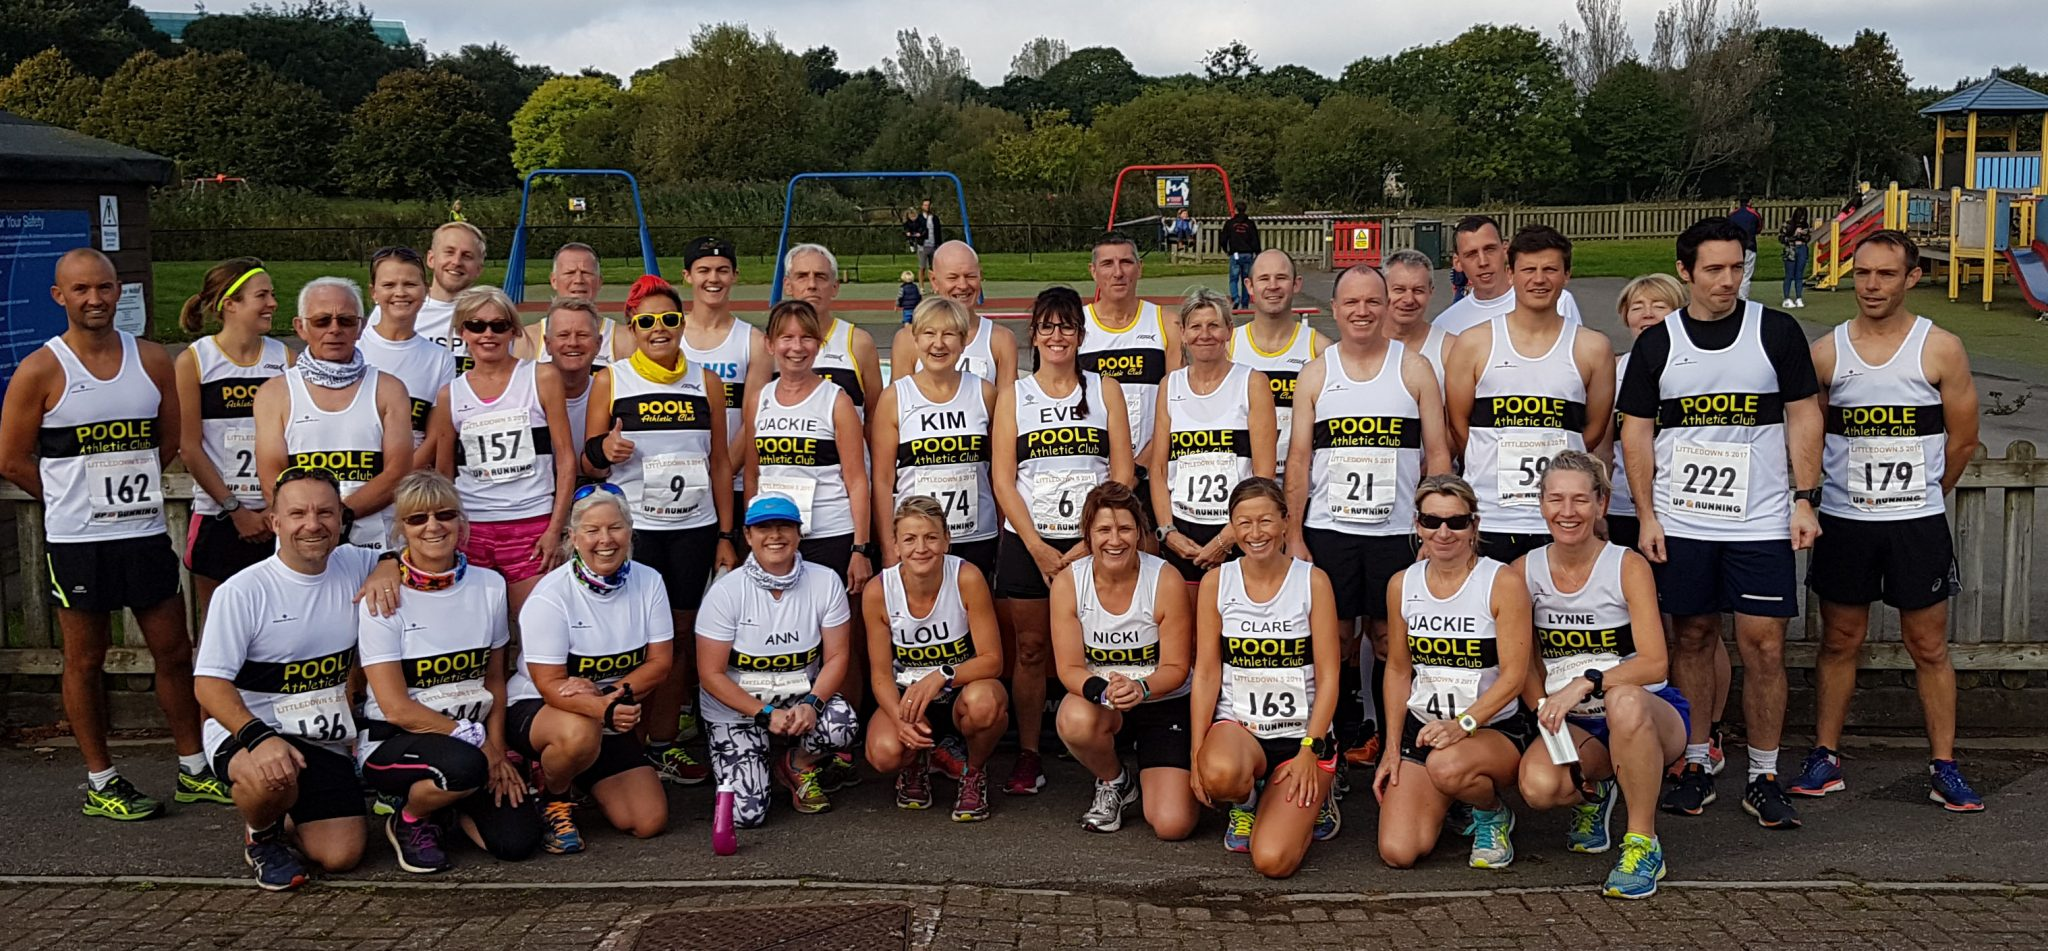 Poole AC at Littledown 5